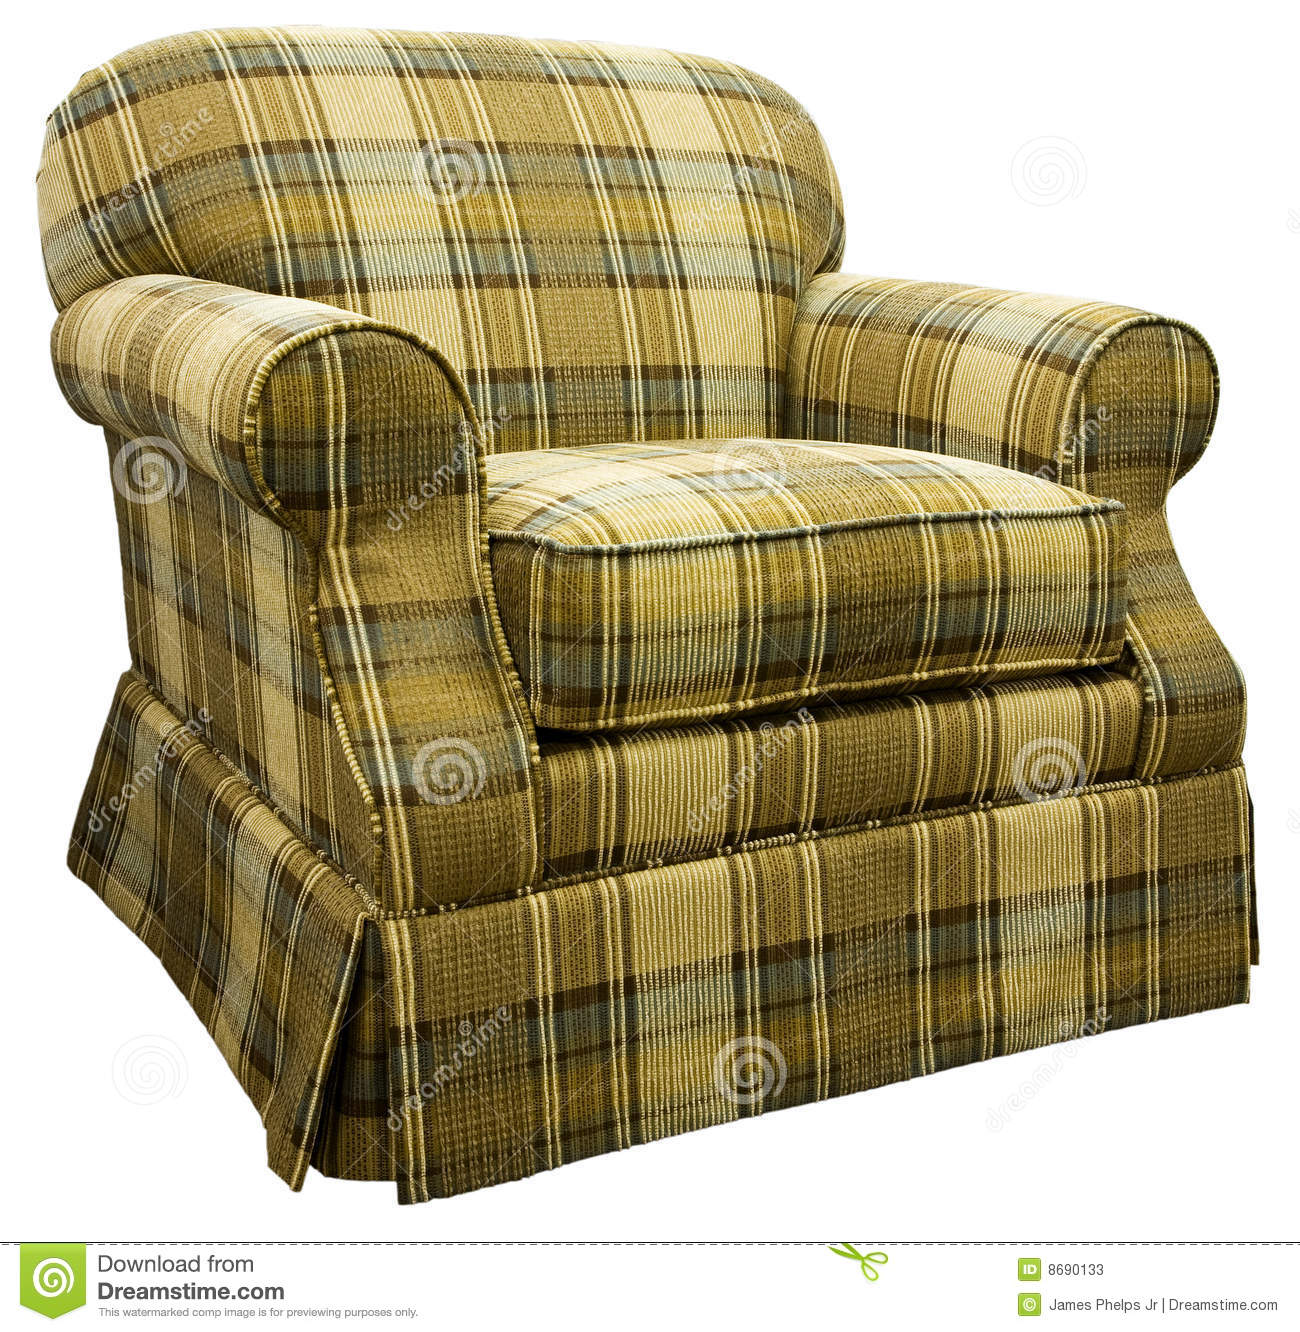 Plaid traditional living room chair with skirt - Plaid Living Room Chairs Modern House